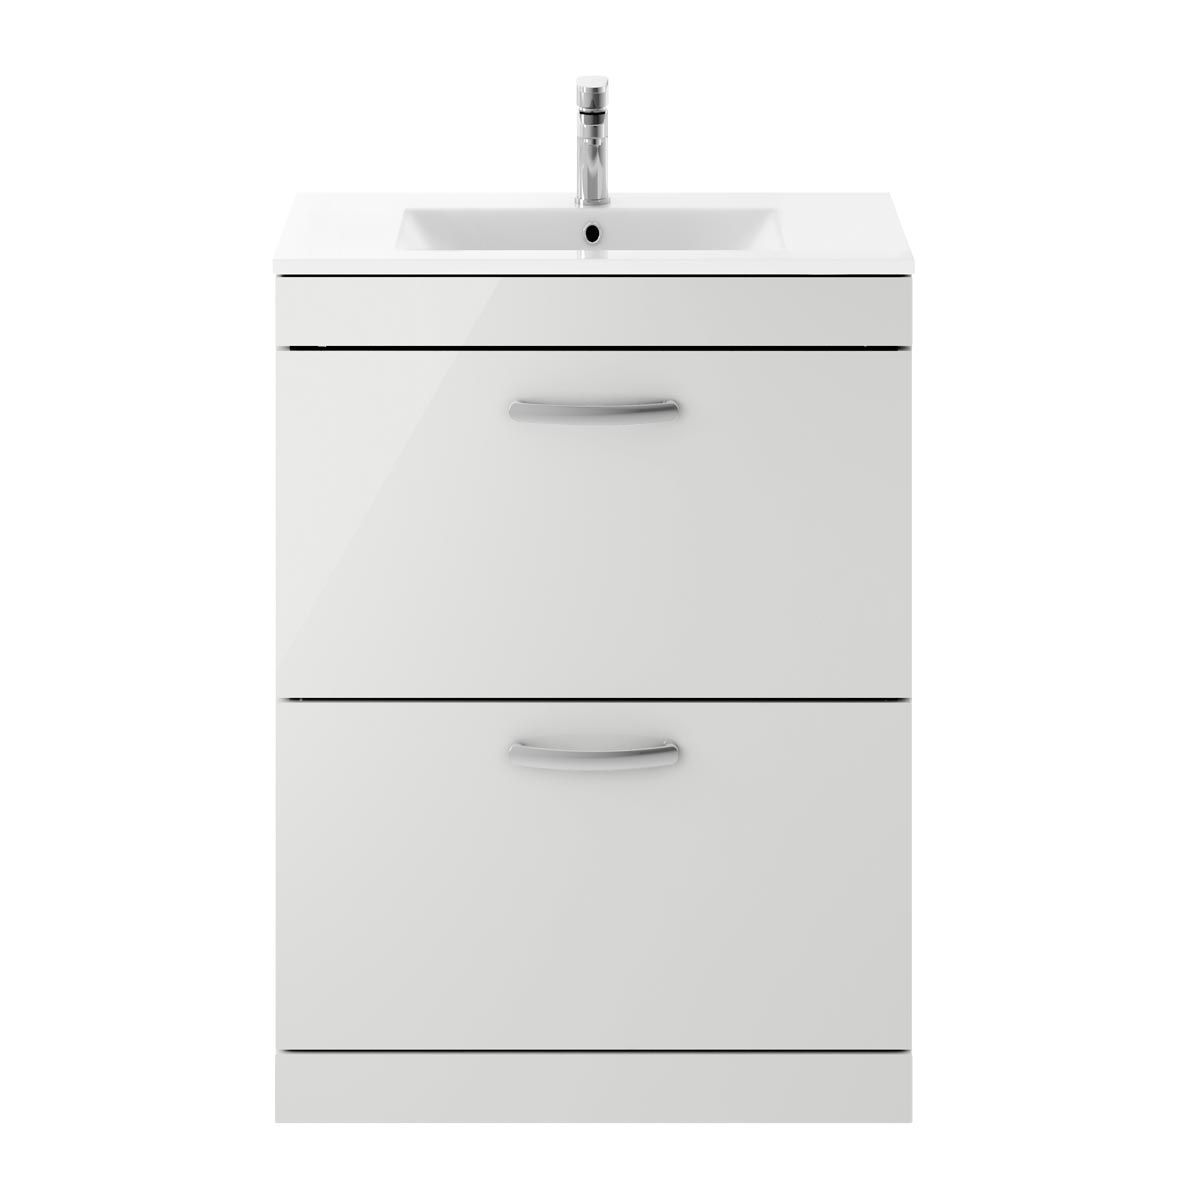 Nuie Athena Gloss Grey Mist 2 Drawer Floor Standing Vanity Unit with 18mm Profile Basin 600mm